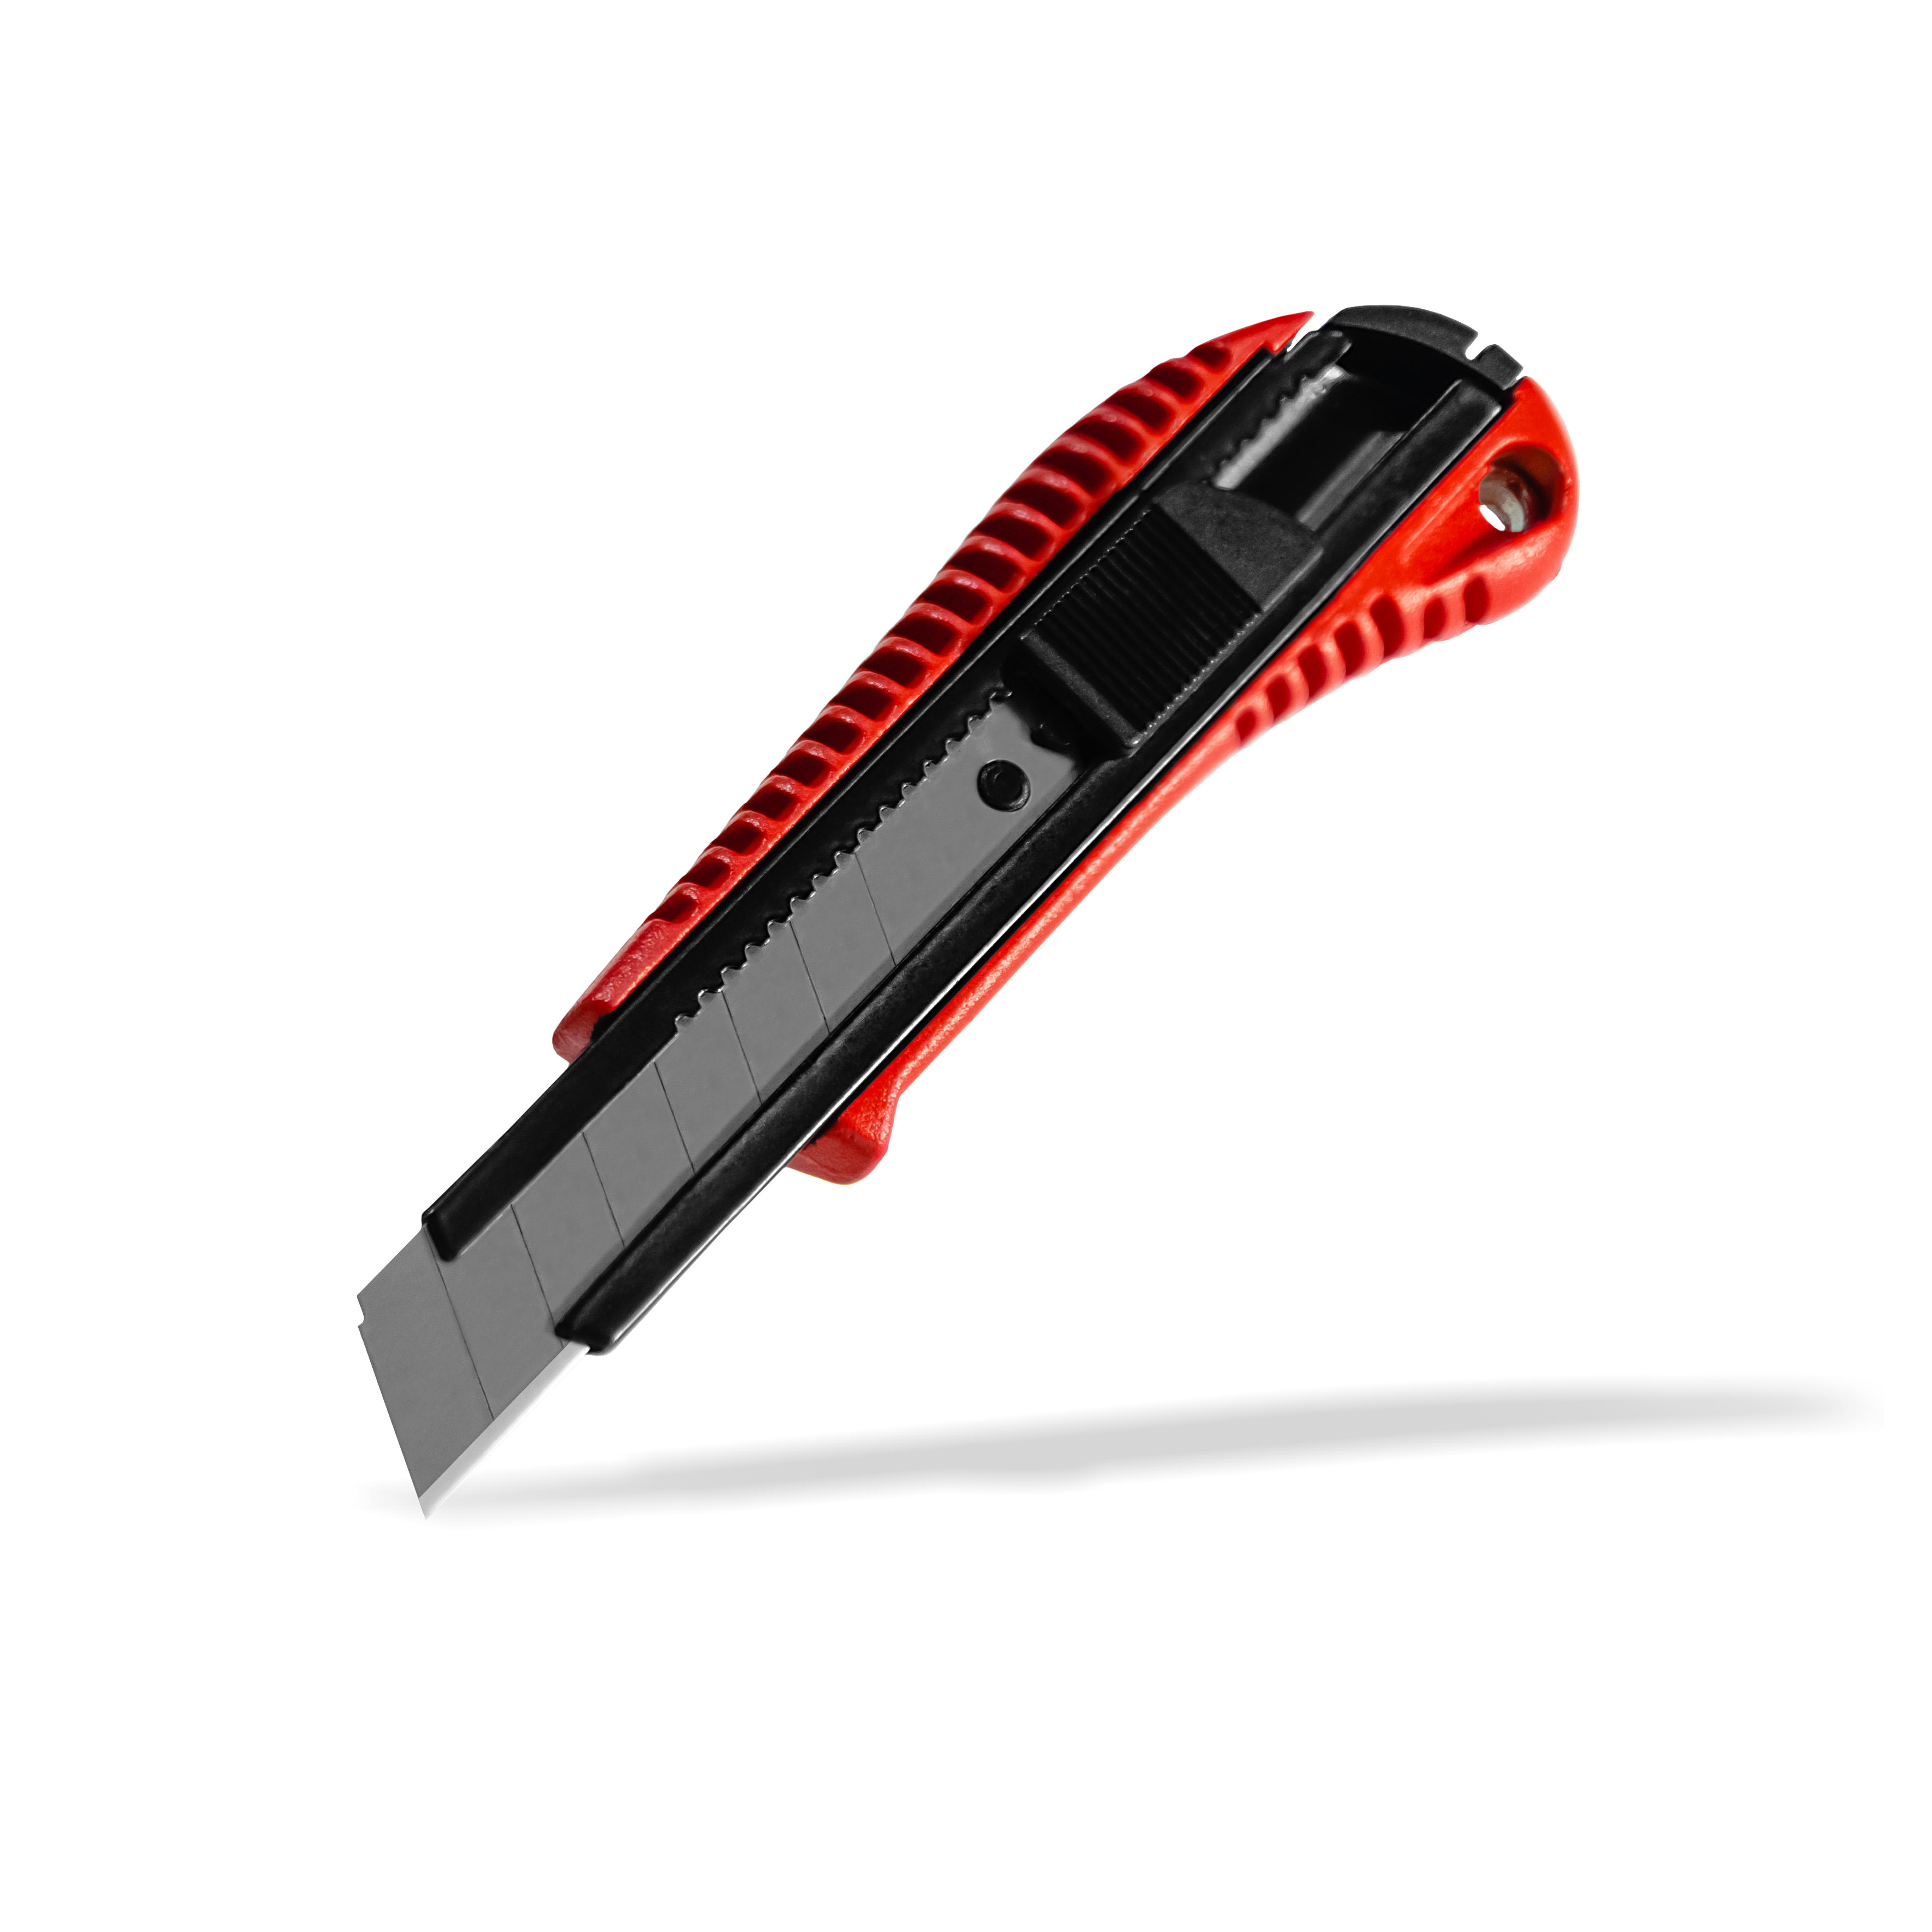 Aluminum Body 18 mm Carbon Steel SK5 Utility Knife Red